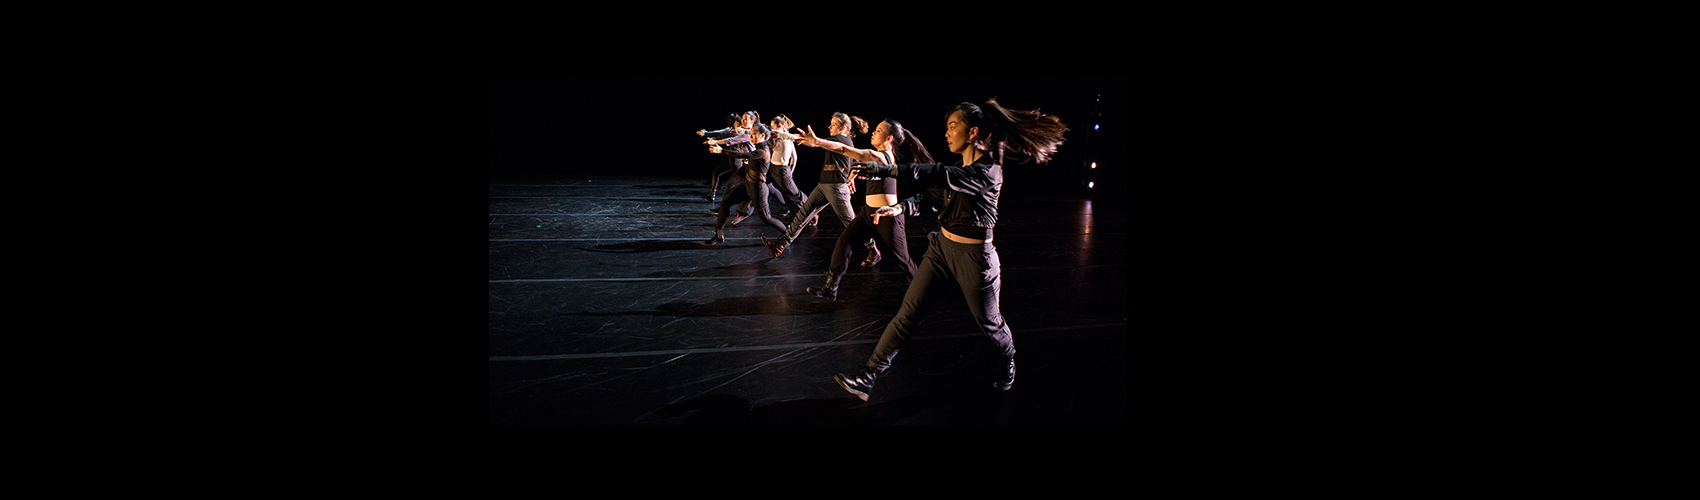 Tornado 2.0 — Choreography: Alethea Alexander / Photo: Tim Summers